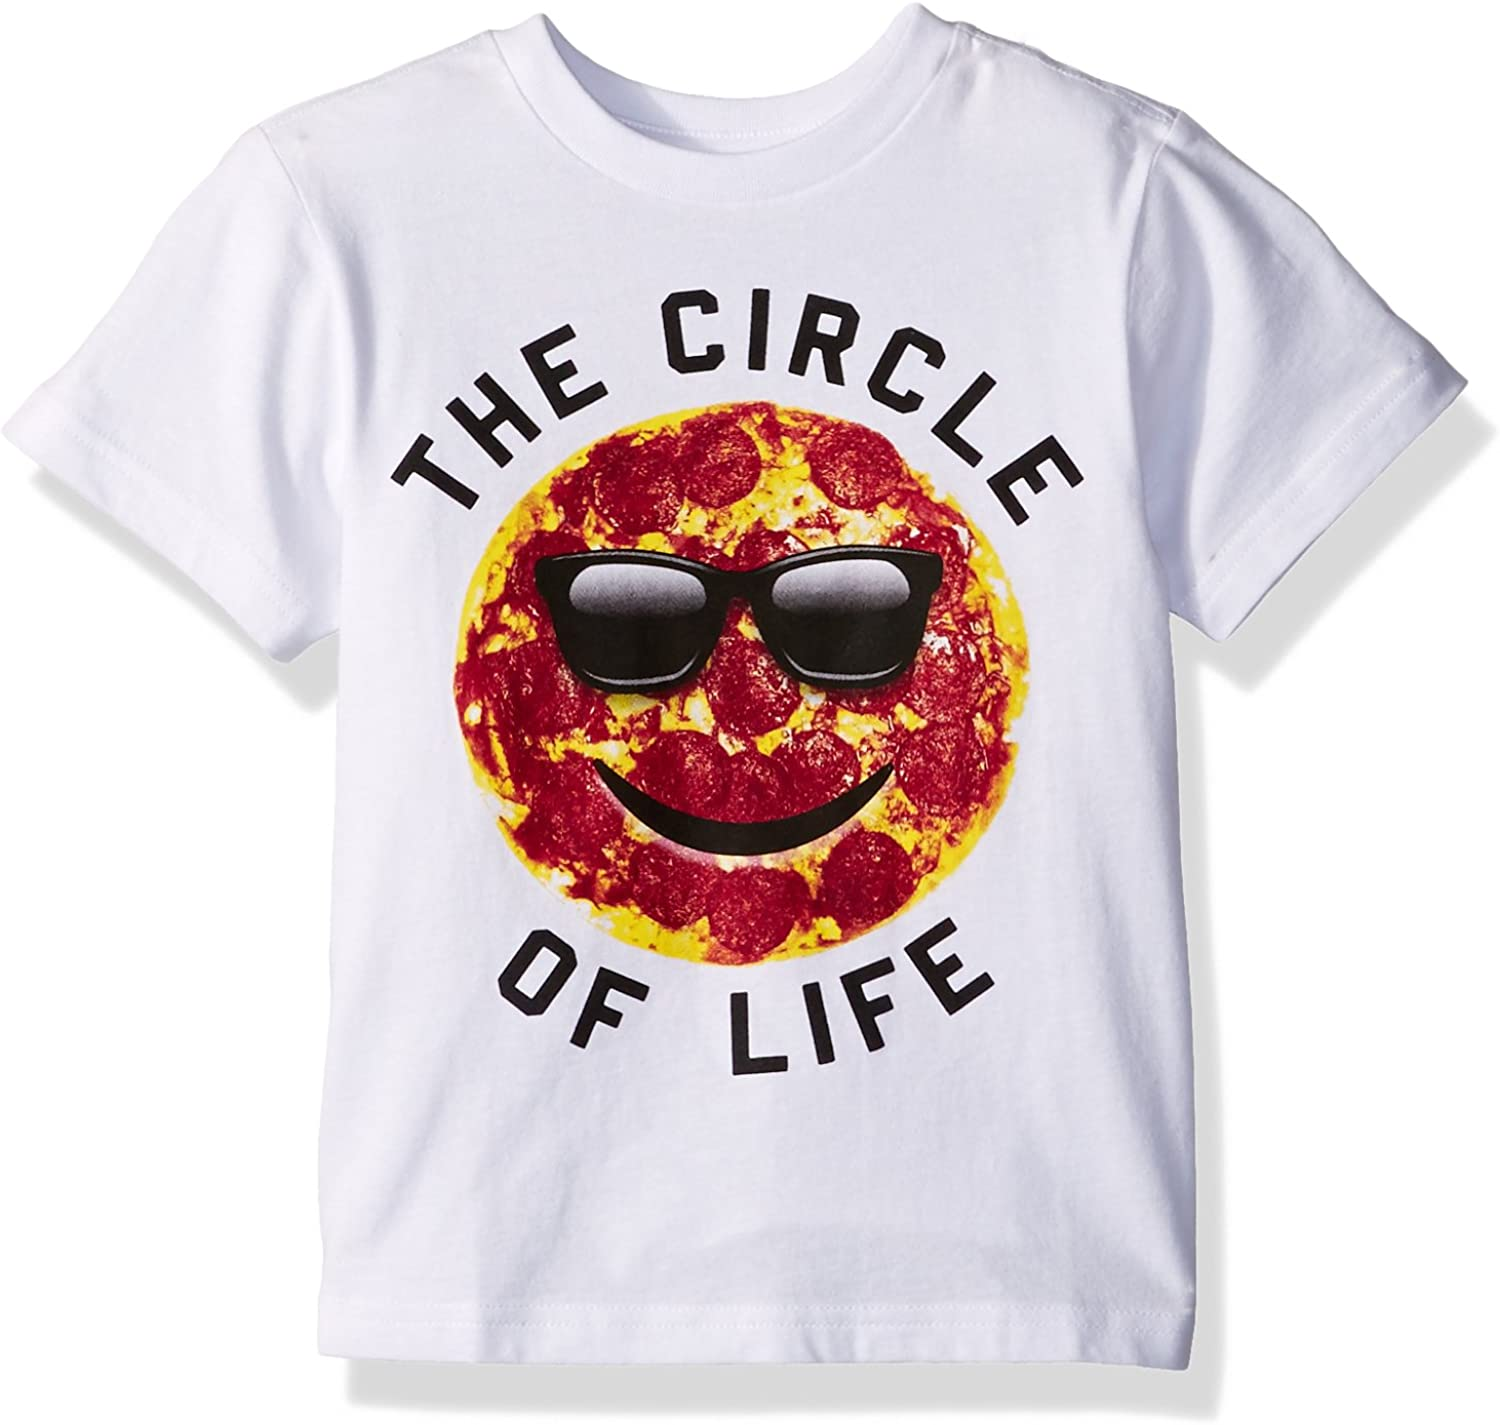 The Children's Place Big Novelty Boys' Recommendation Graphic 5 popular T-Shirt